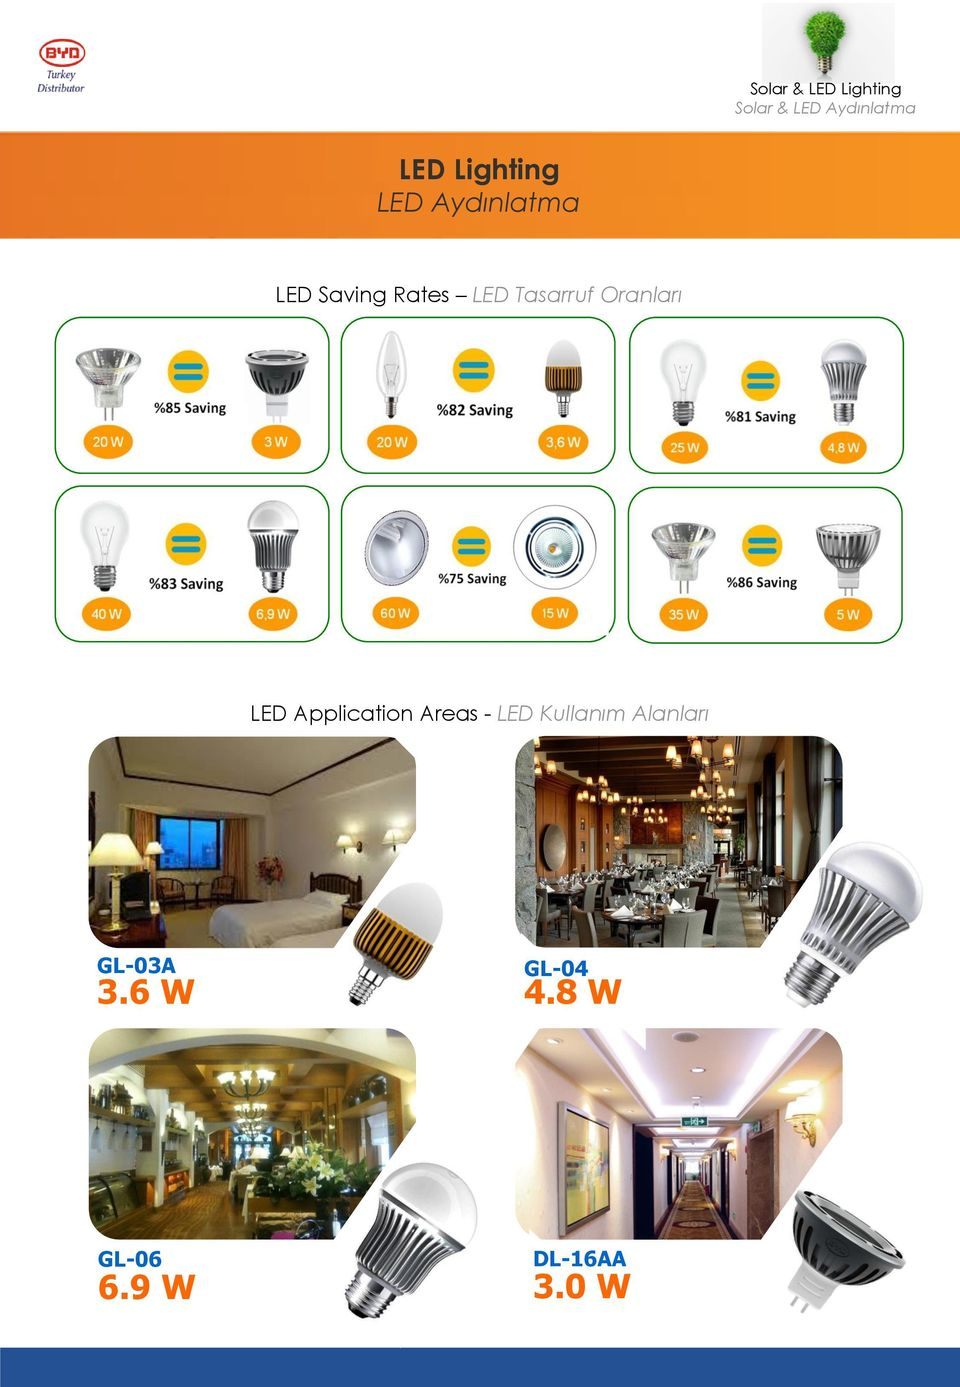 Tasarruf Oranları LED Application Areas - LED